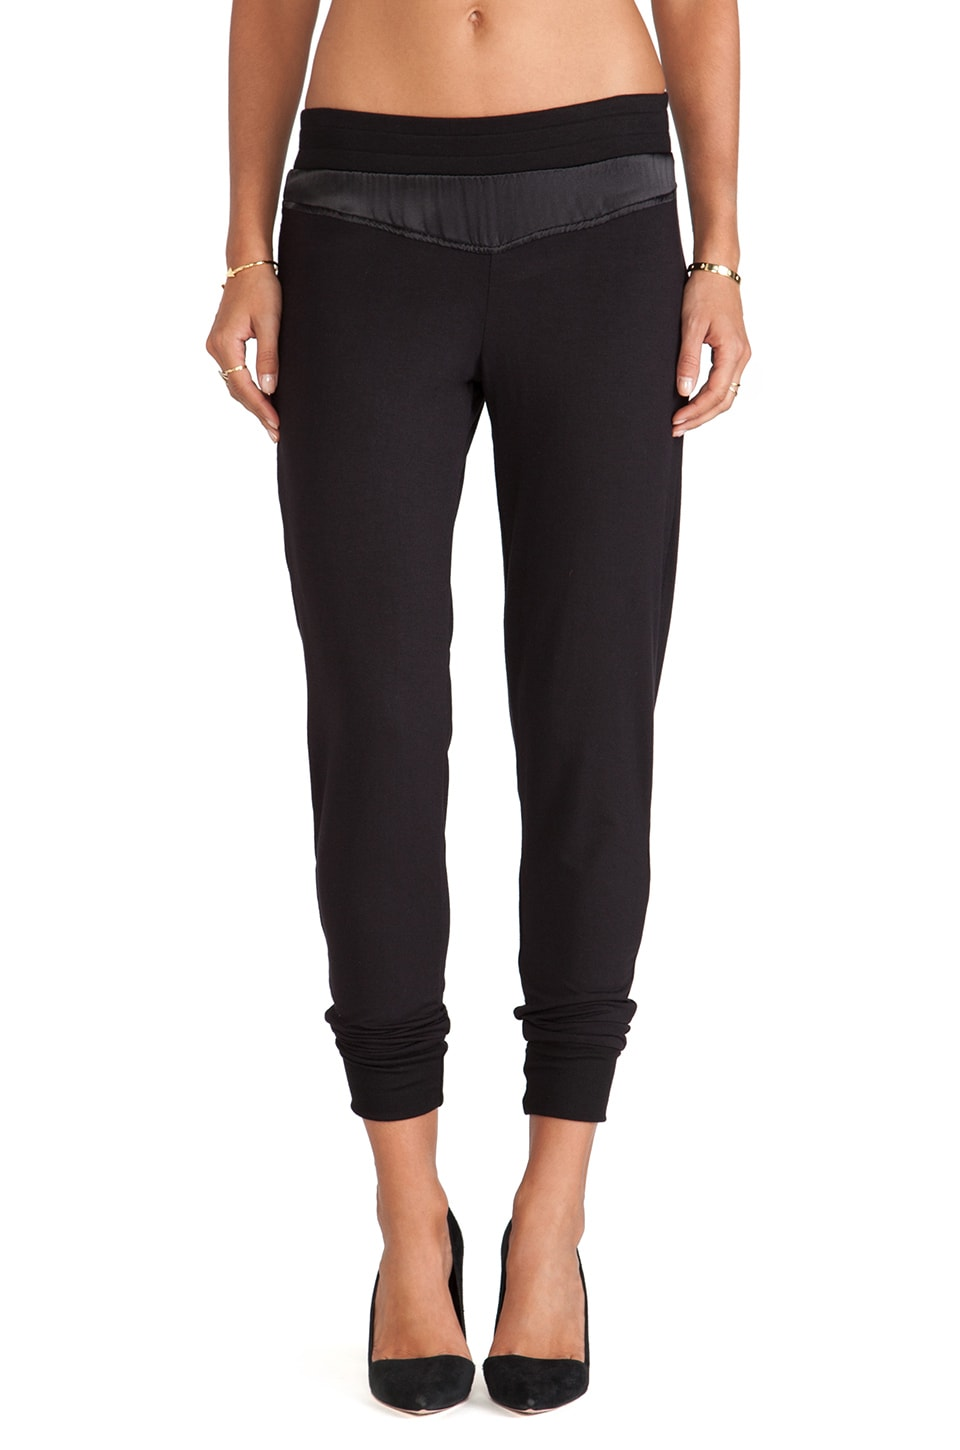 Heather Silk Trimmed Pencil Pant in Black